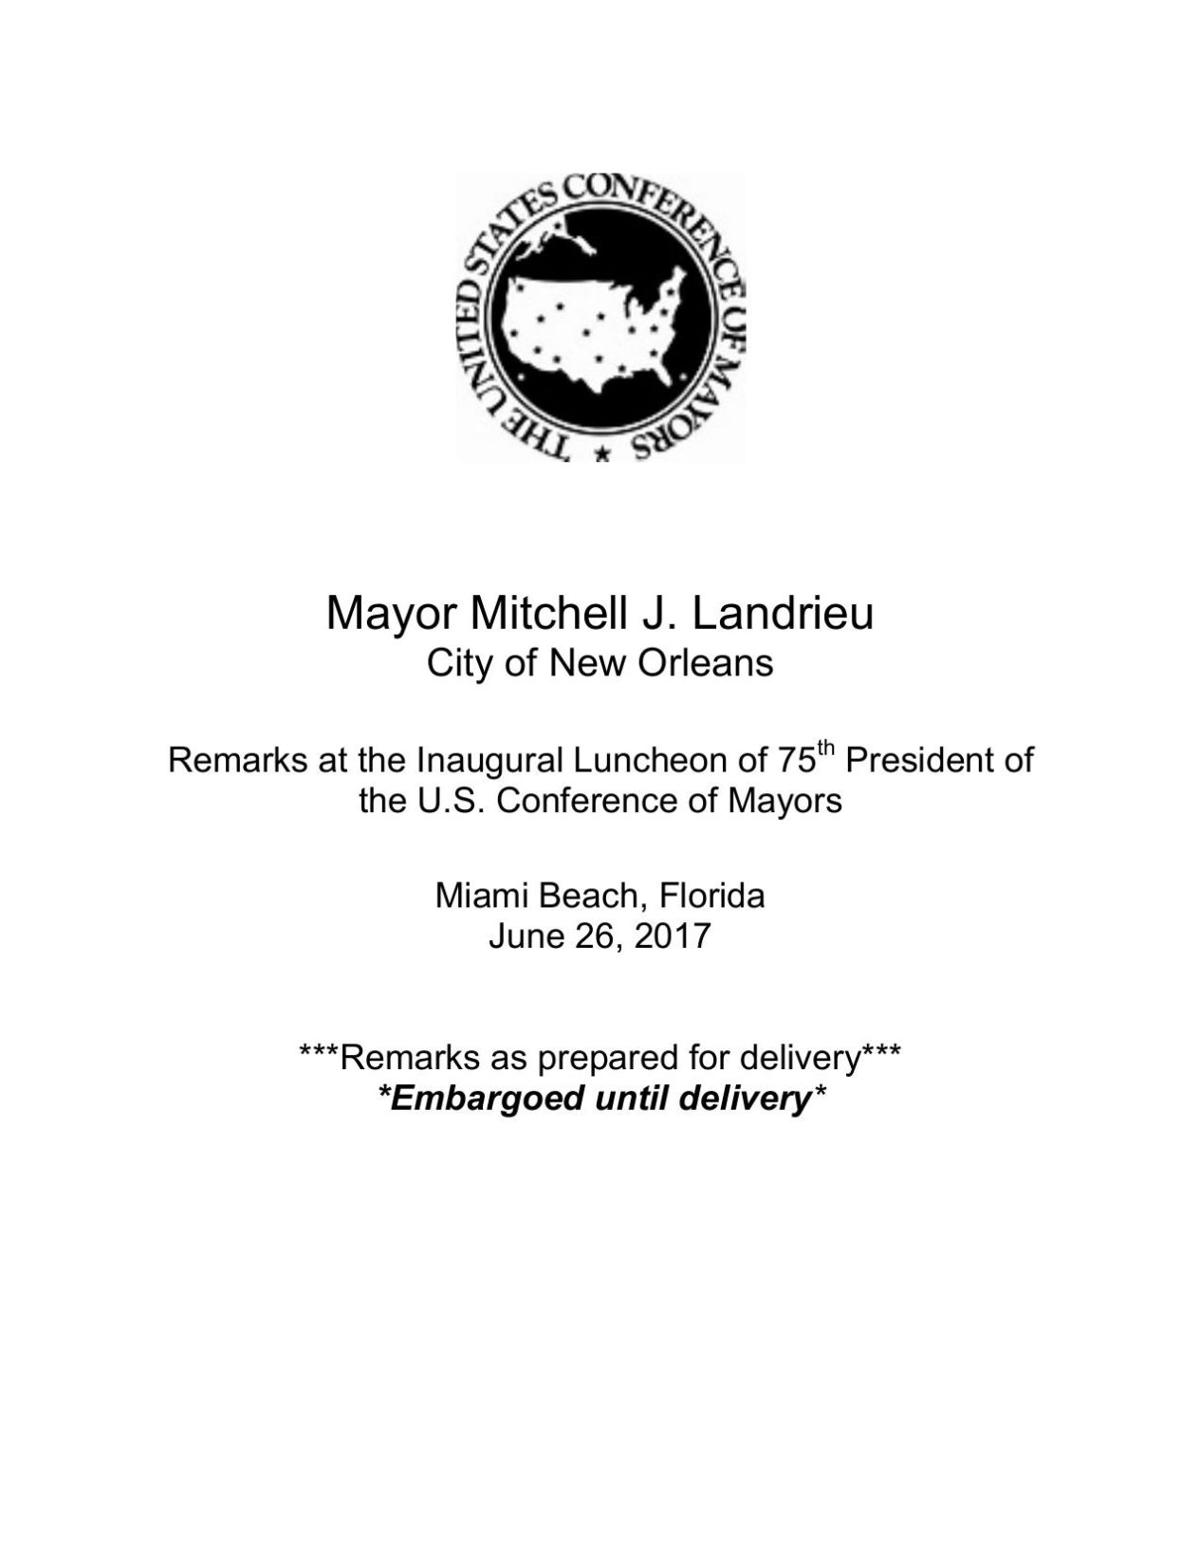 Mitch Landrieu's full speech at U.S. mayors conference